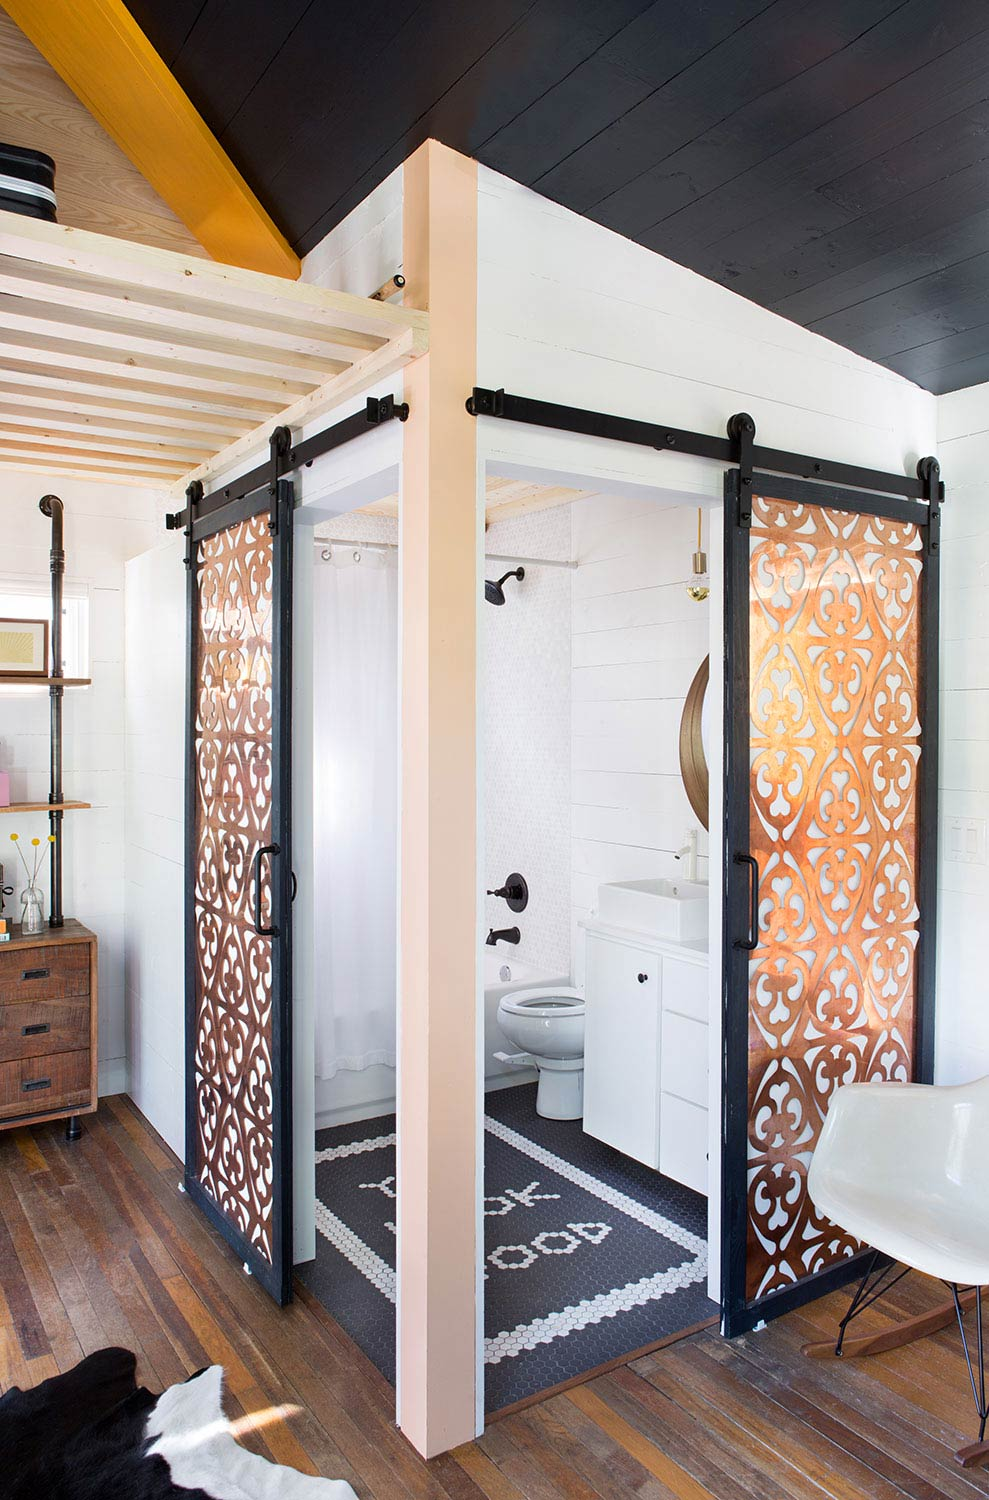 TinyHouse-116-OPT.jpg